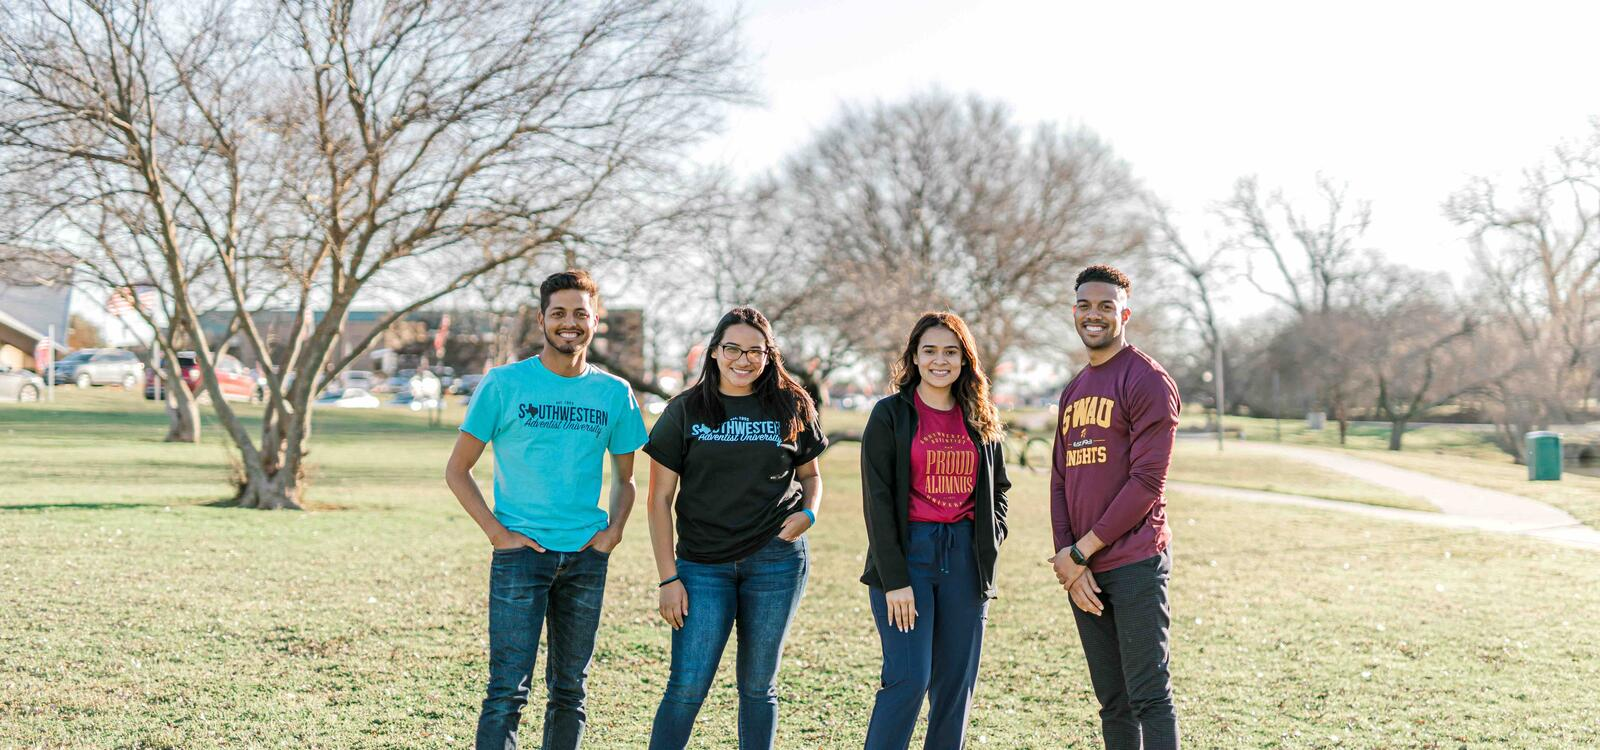 Four students of different ethnicities standing next to each other and smiling